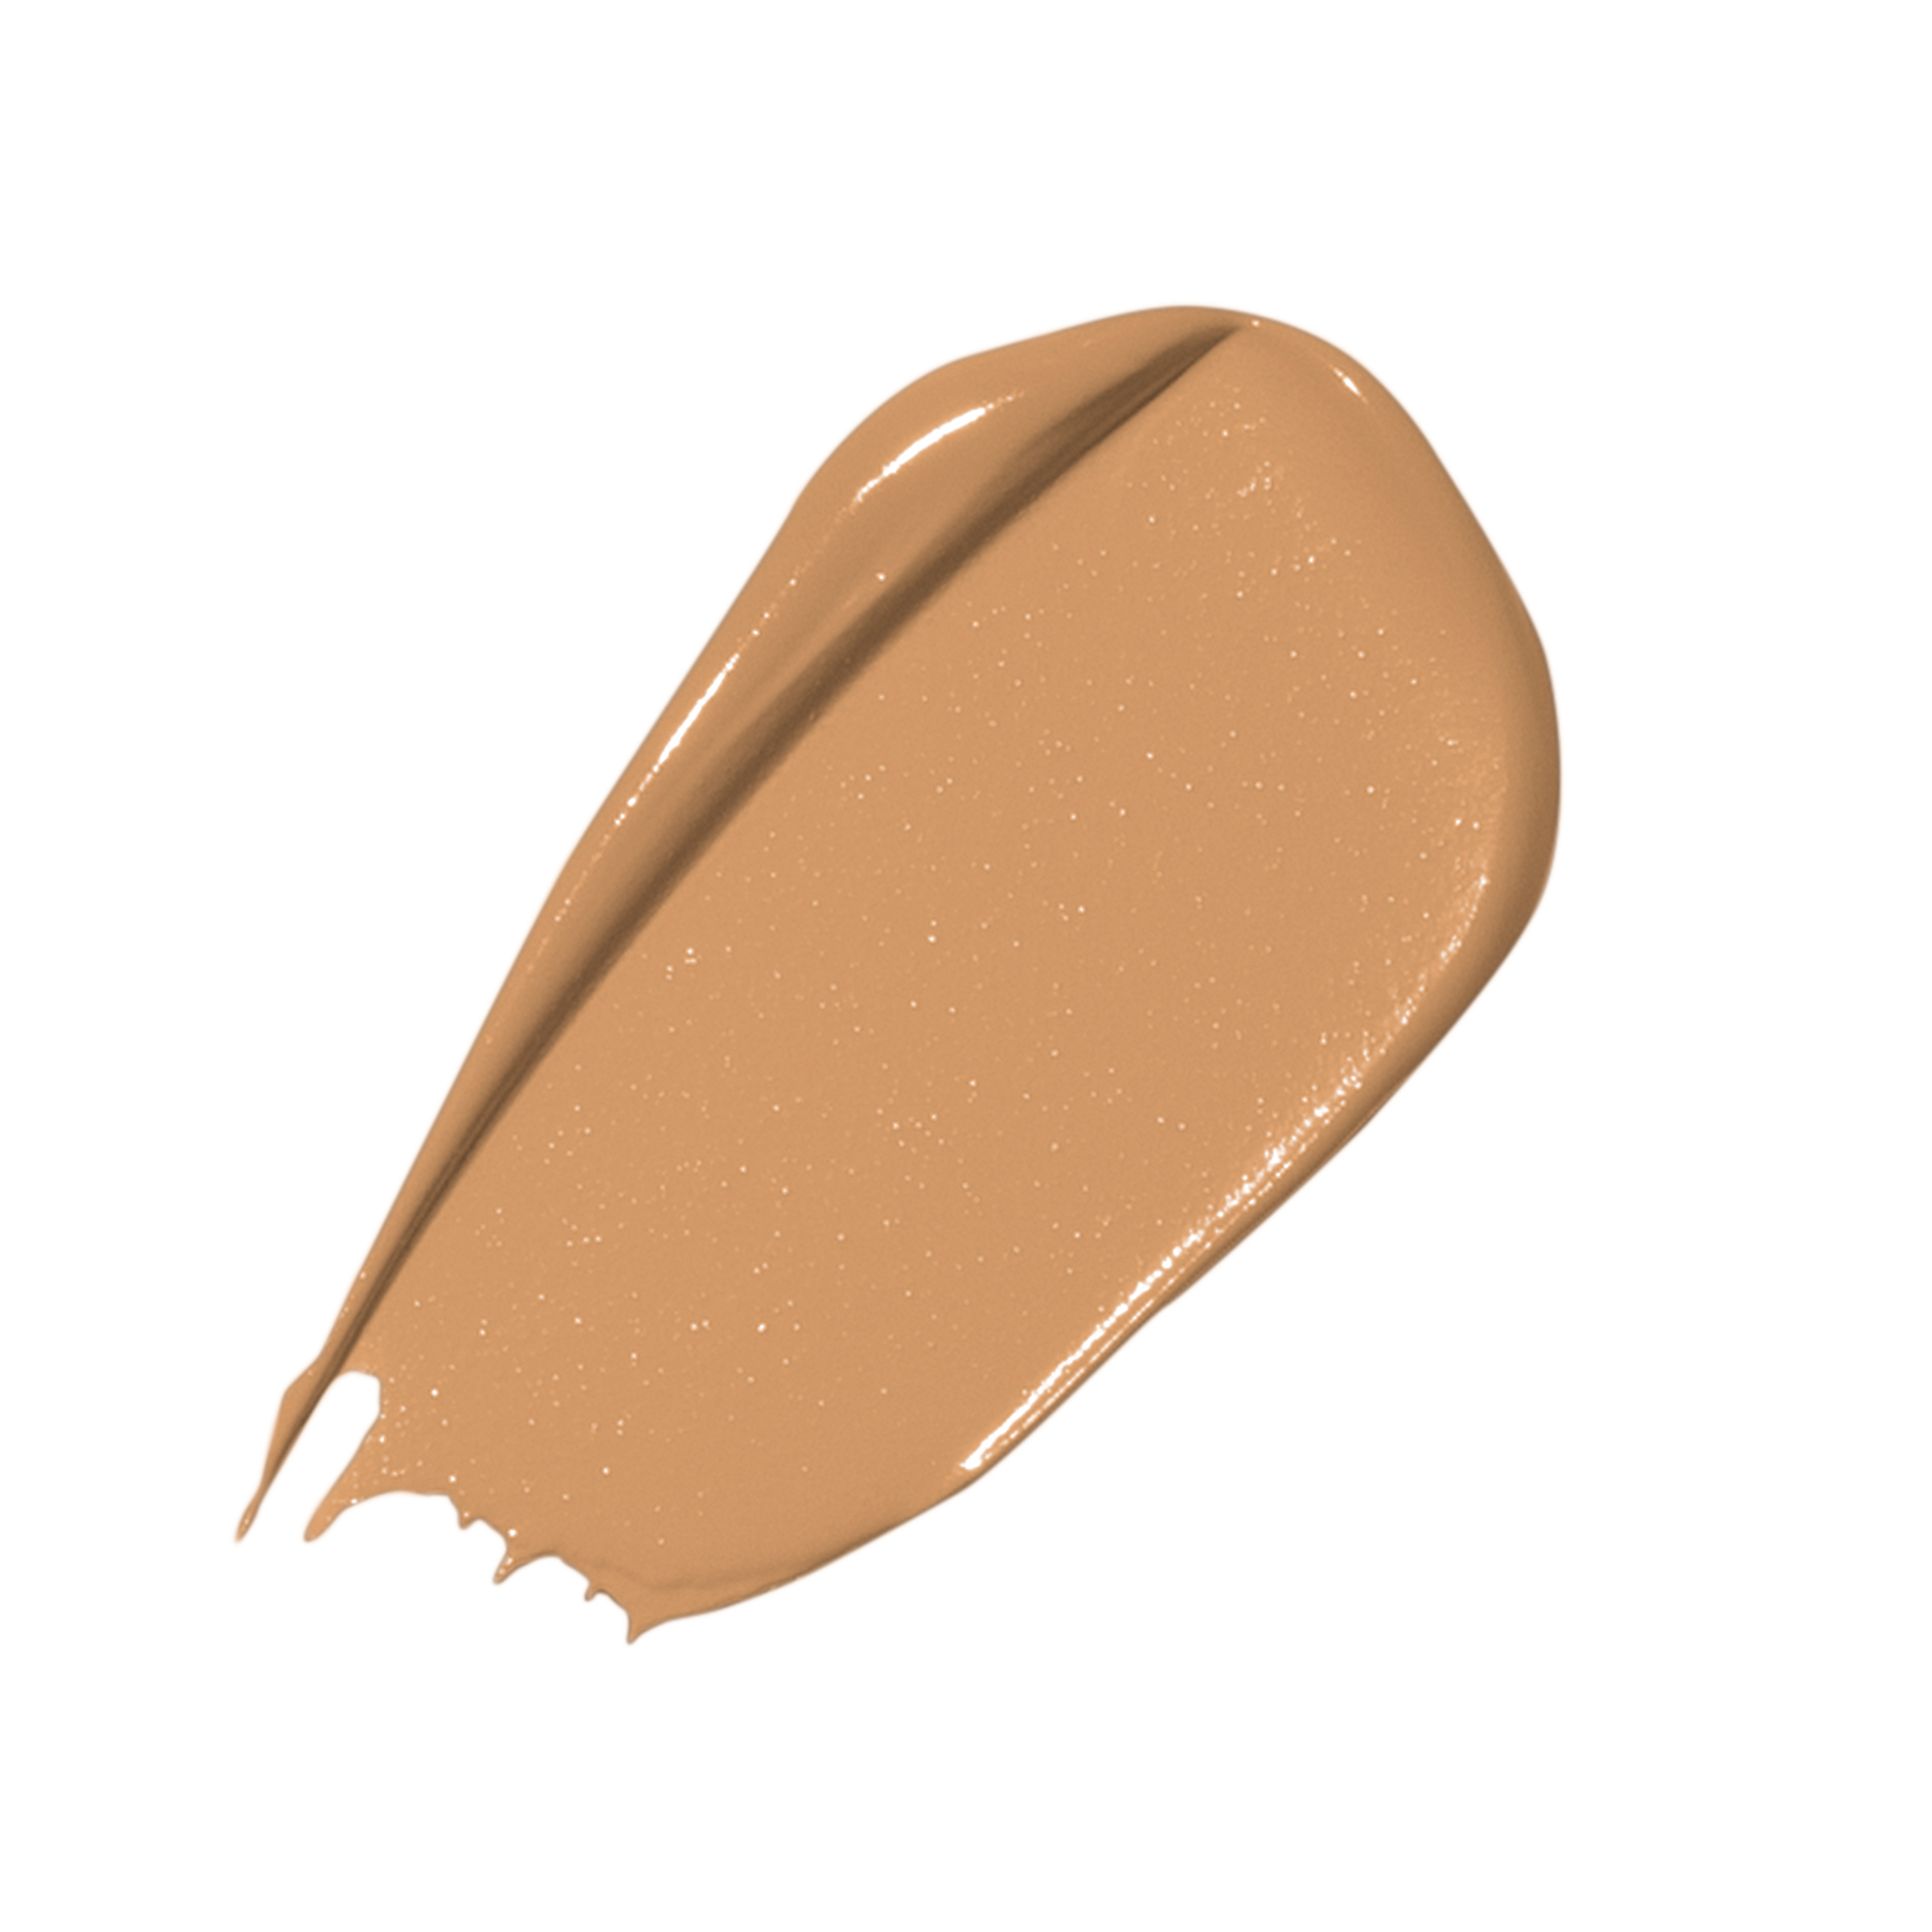 Ordinary_Colours_Concealer_Swatch_3.0R_0d5f_thumbnail